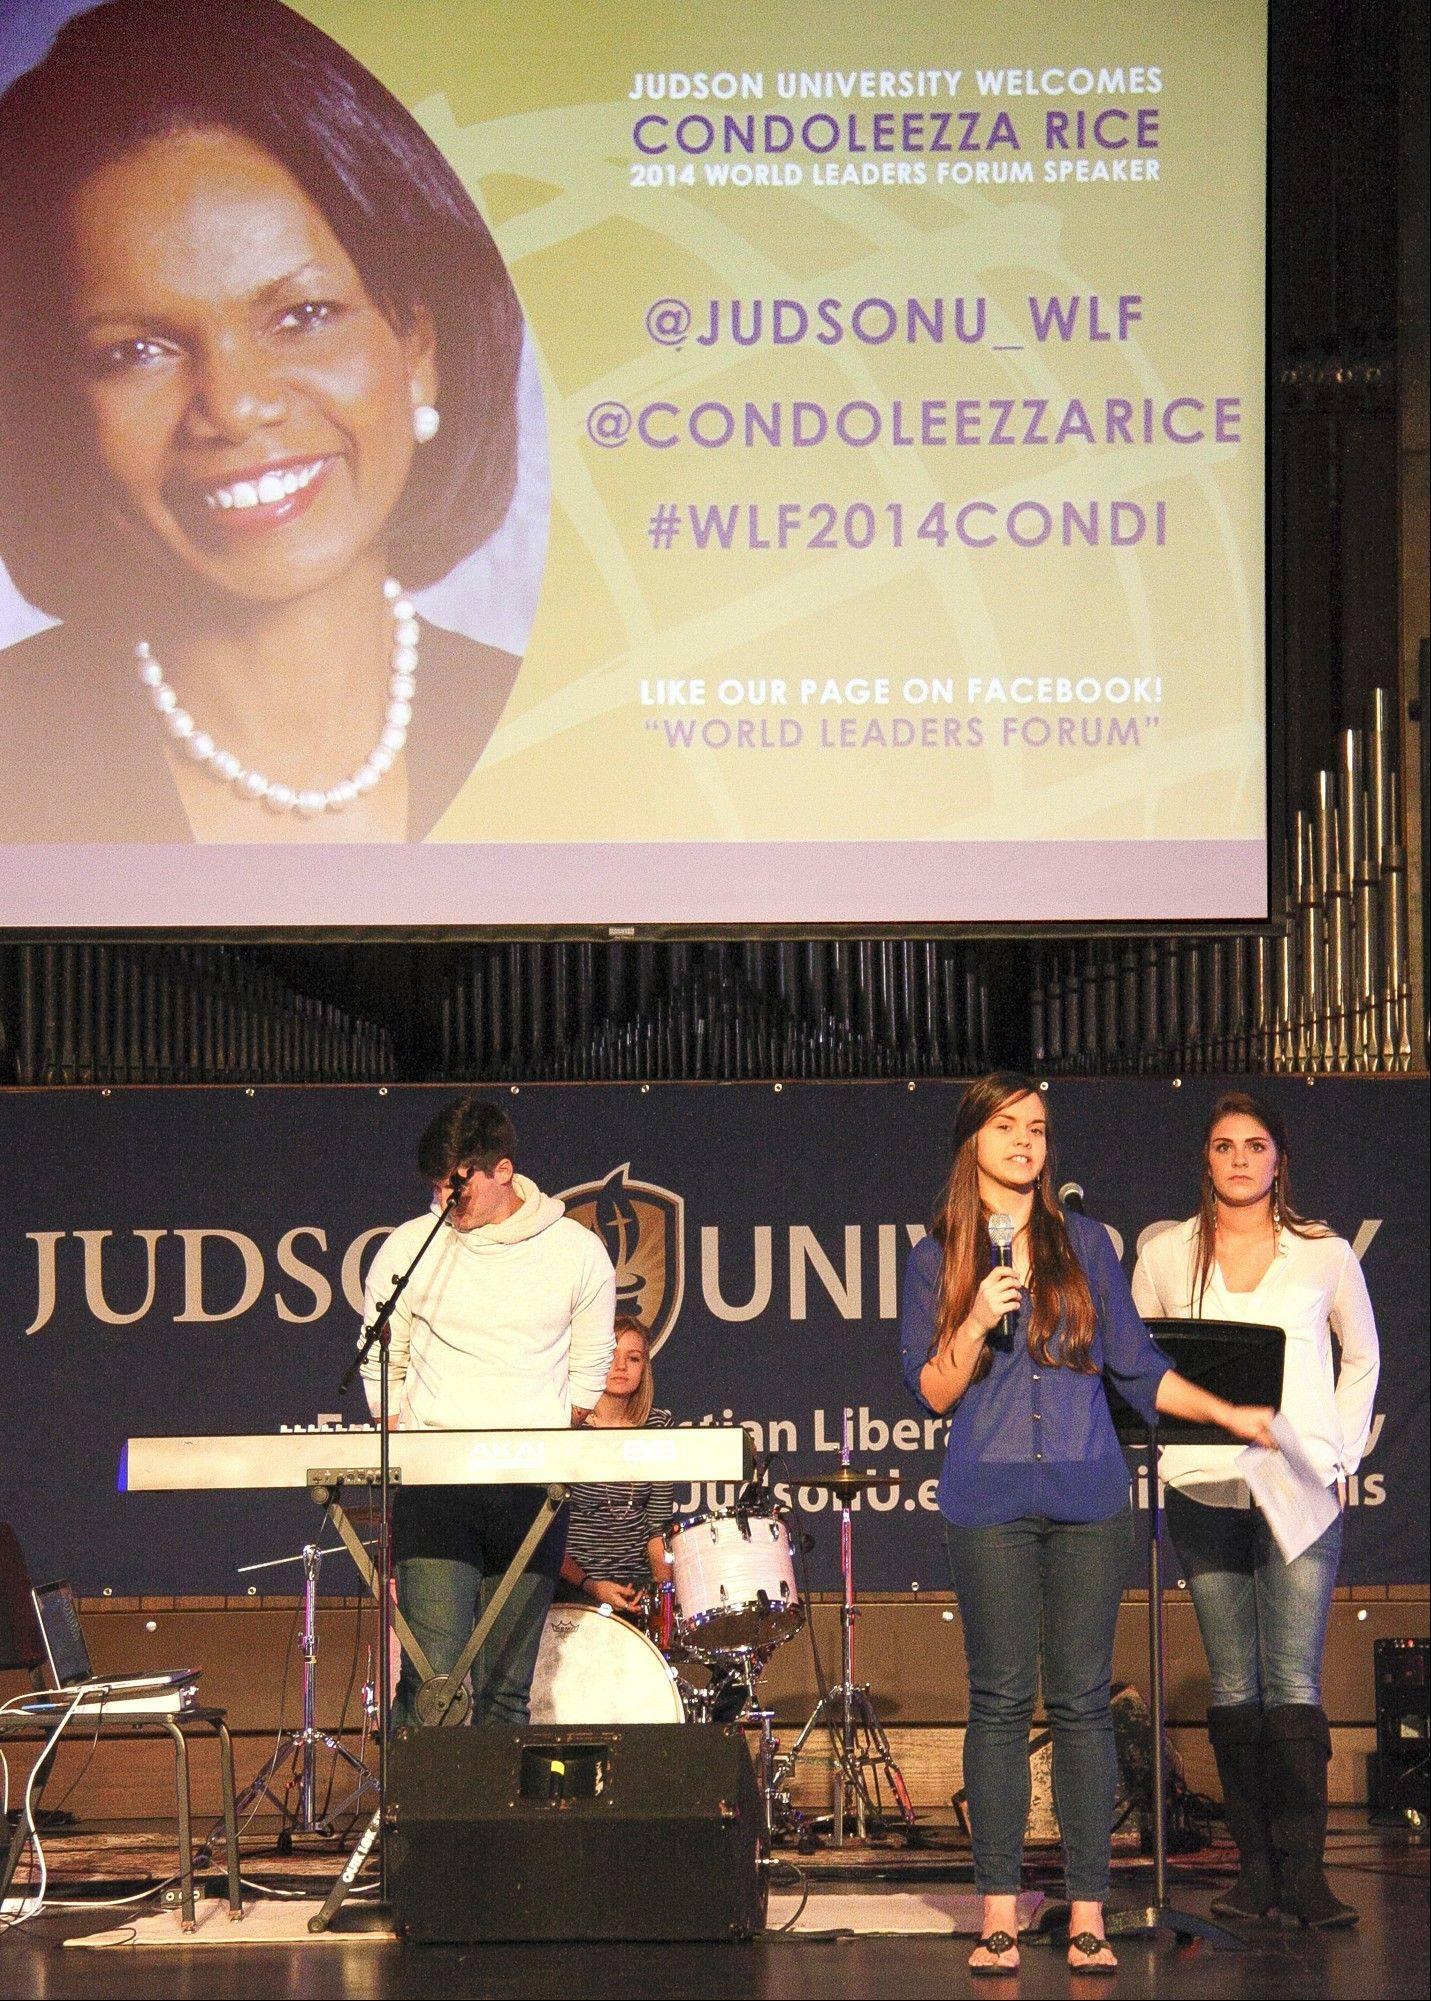 Judson University senior Cassie Criminger announces the 2014 World Leaders Forum keynote speaker, Condoleezza Rice, to hundreds of excited students, faculty and staff Friday in Elgin.